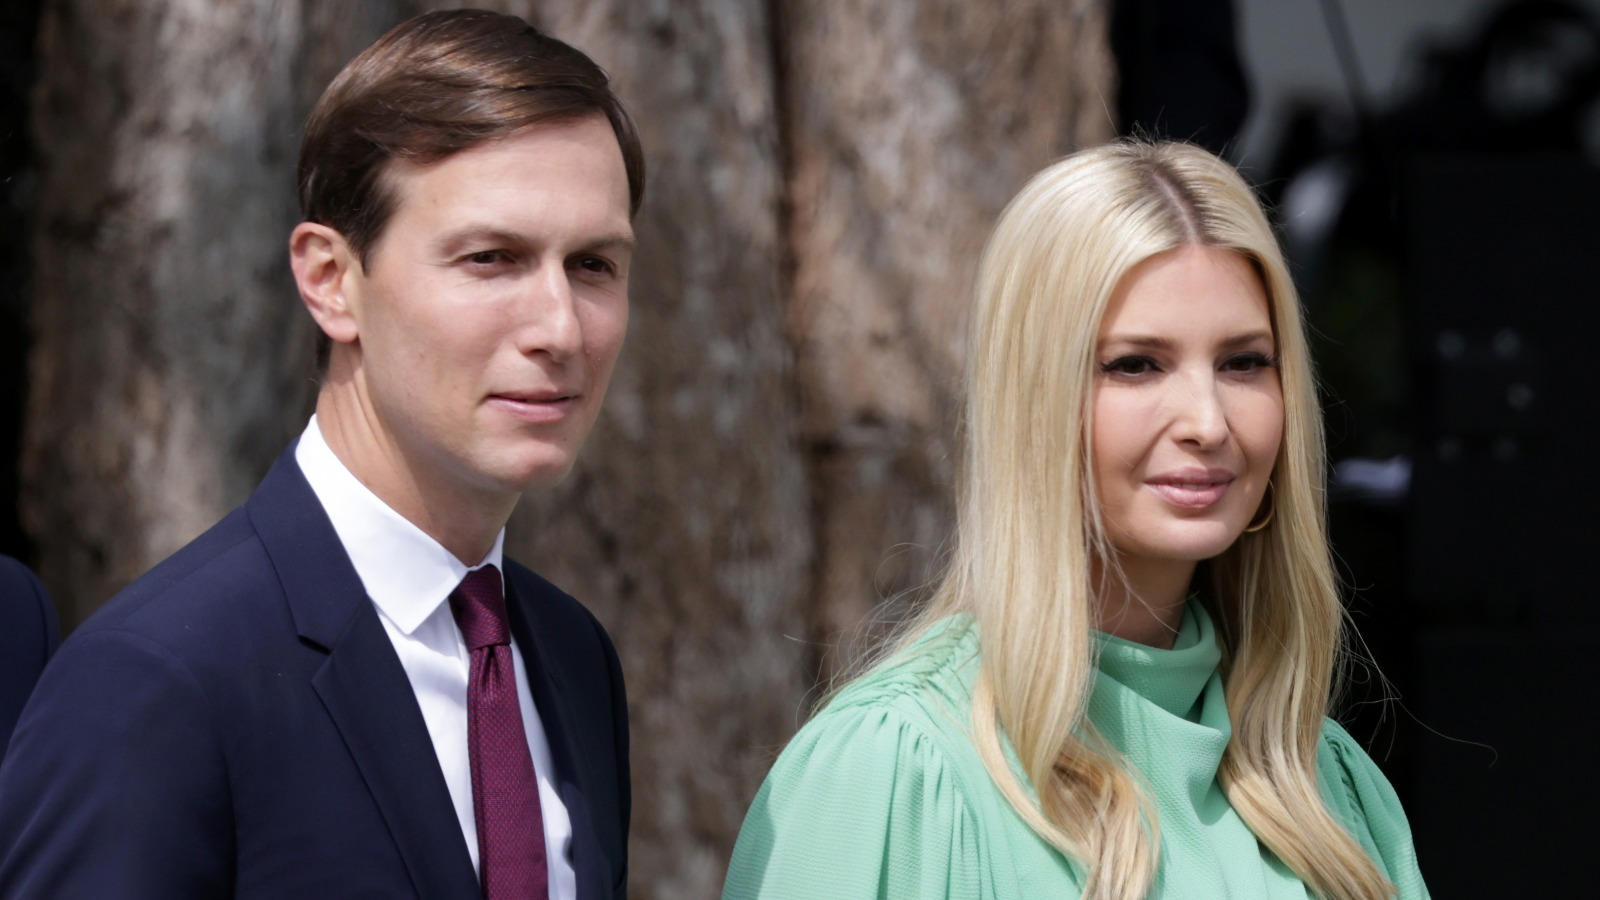 The Truth About Ivanka Trump's Husband